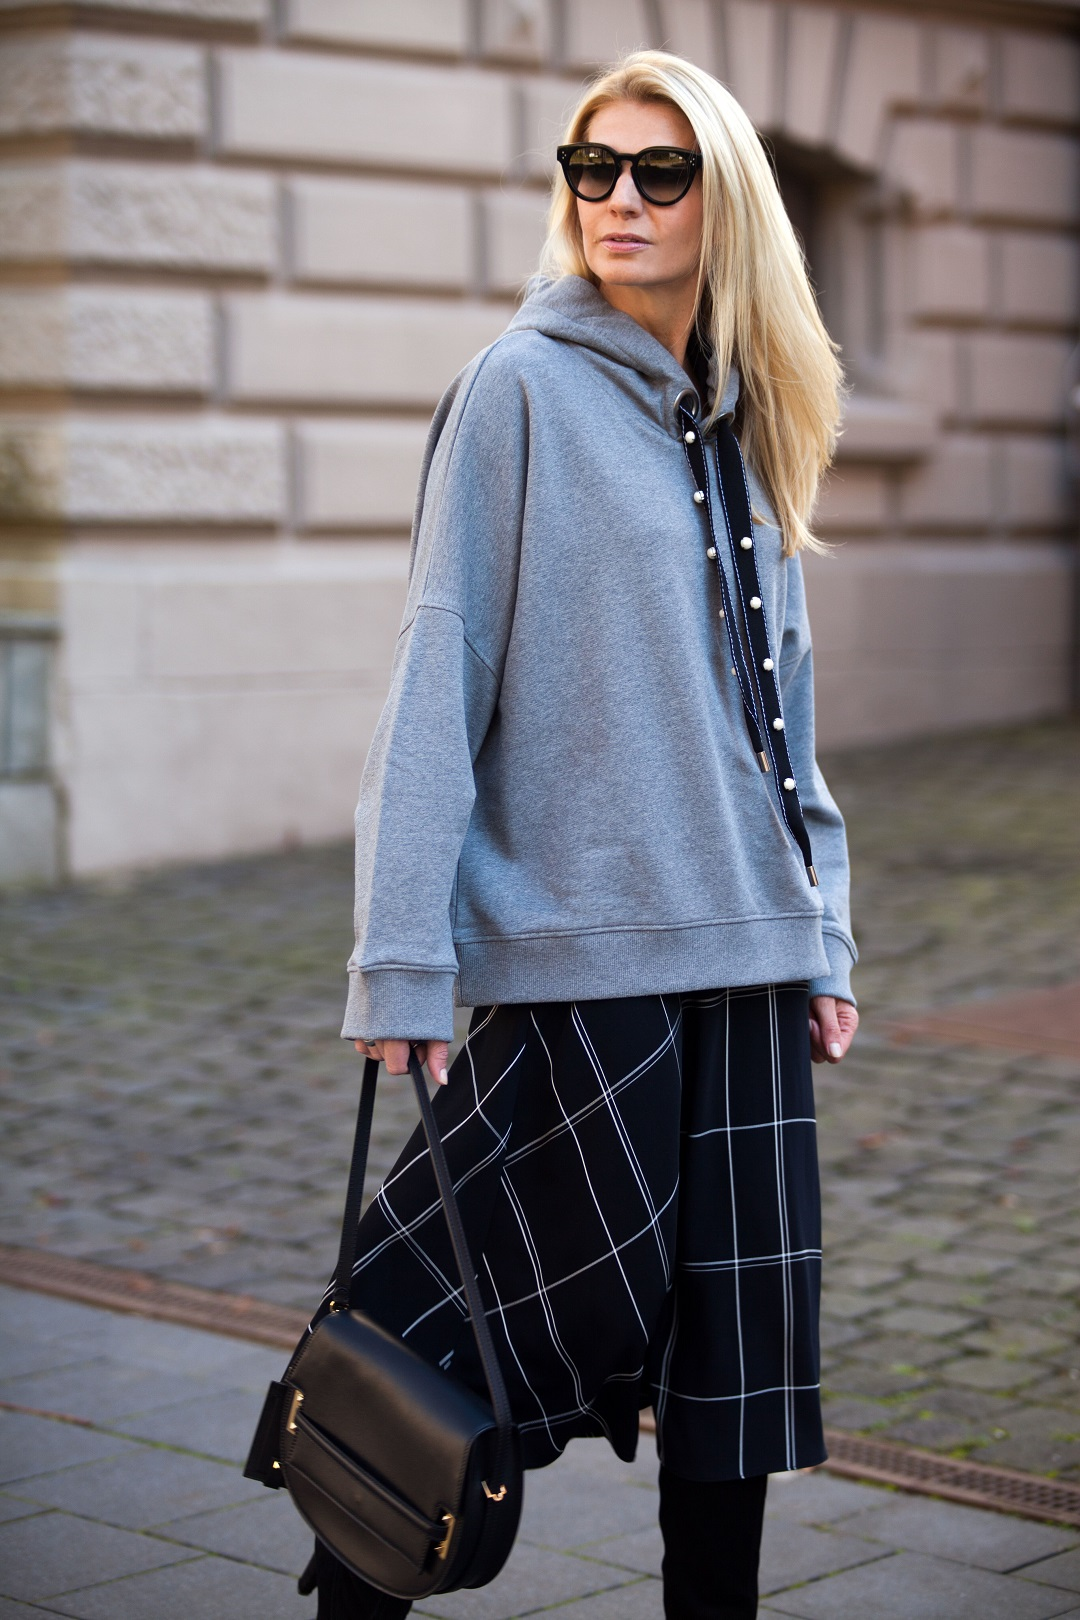 L.K. Bennett London skirt and Dorothee Schumacher Hoodie